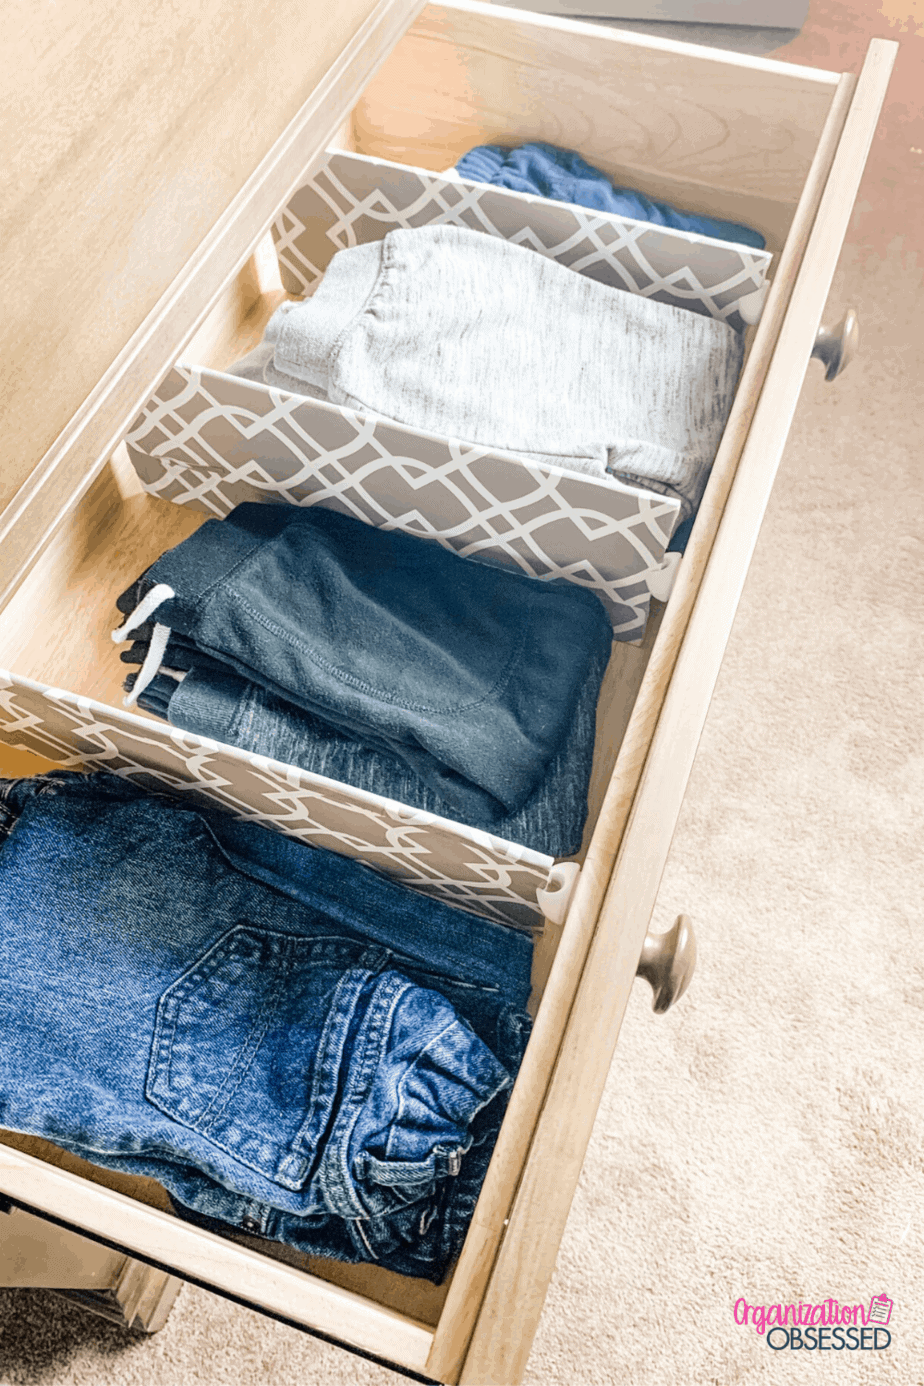 20 Amazing Organization Hacks That Will Transform Your Bedroom Organization Obsessed